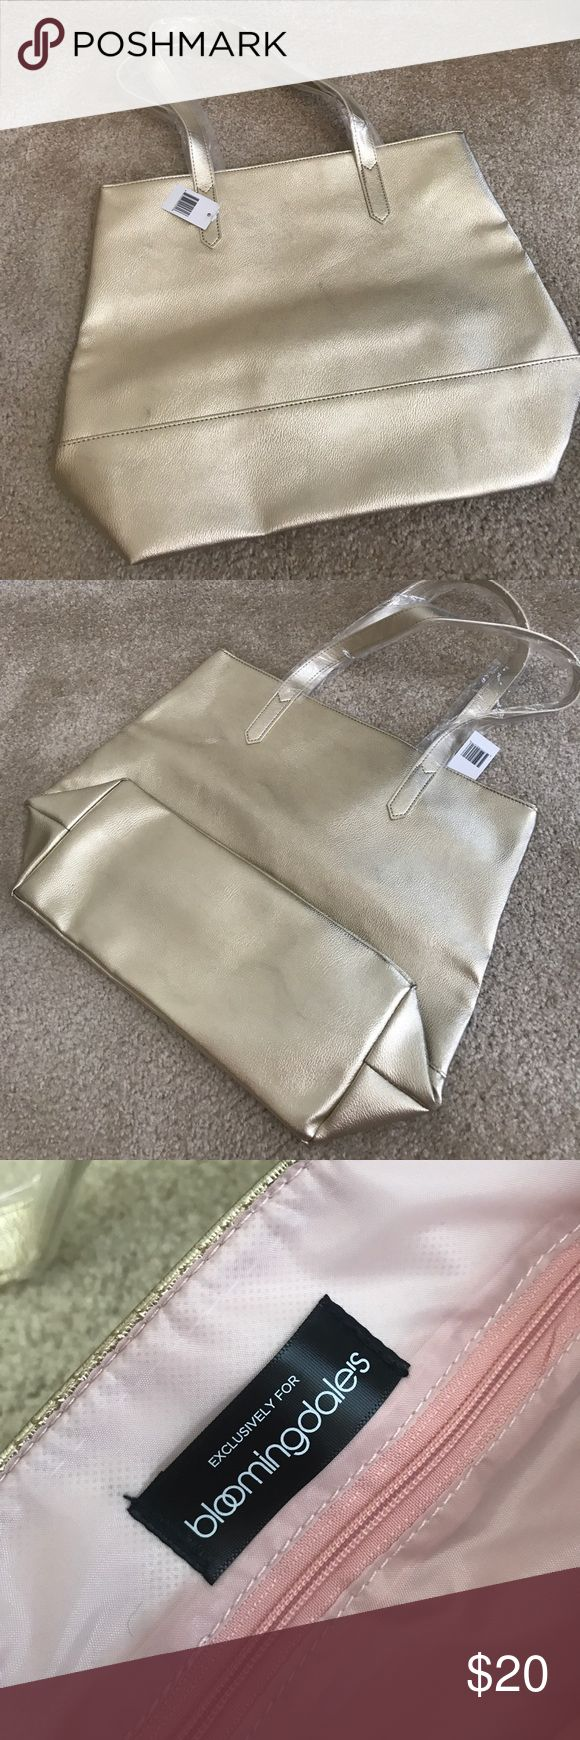 Metallic Everyday Tote Bag Metallic Tote bag / Can be used for everyday / Exclusive GWP from Bloomingdale's / Last picture shows size in relation to a pair of sunglasses / Metallic gold color, perfect for summer / Lined with pink fabric / One zipper pocket Bloomingdale's Bags Totes